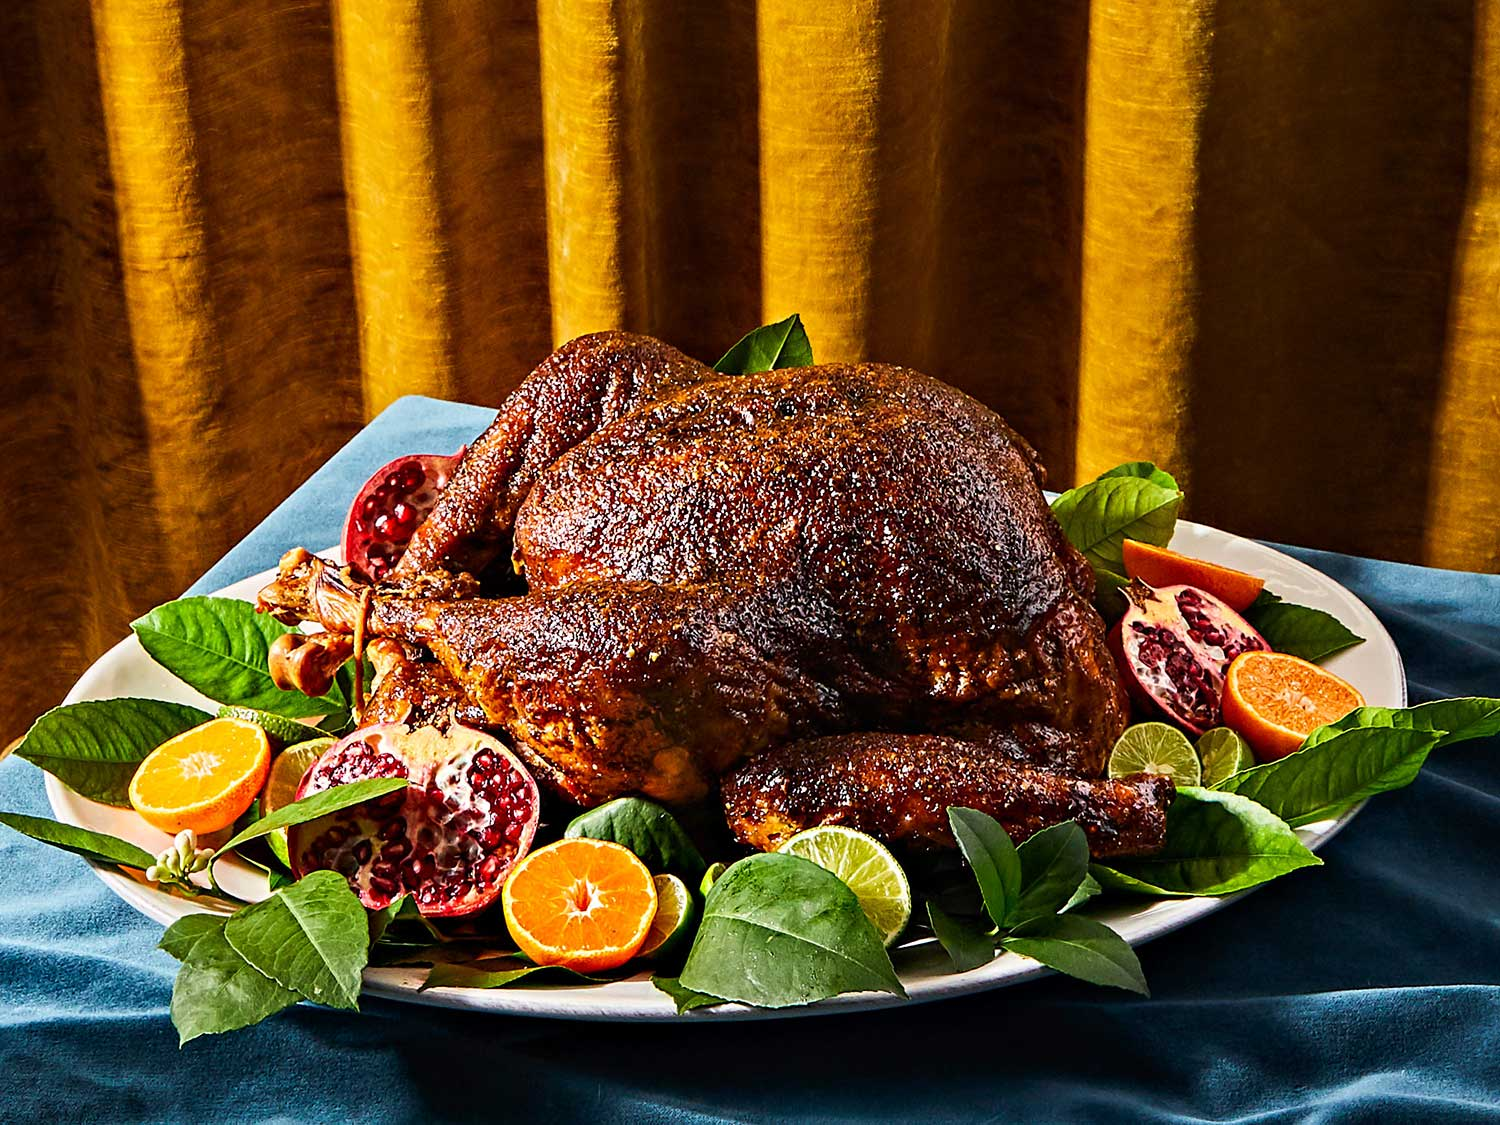 Full of fiery chiles and warm spices, the all-purpose seasoning for this turkey can also be used as a rub on chicken, pork, goat, fish, and vegetables.